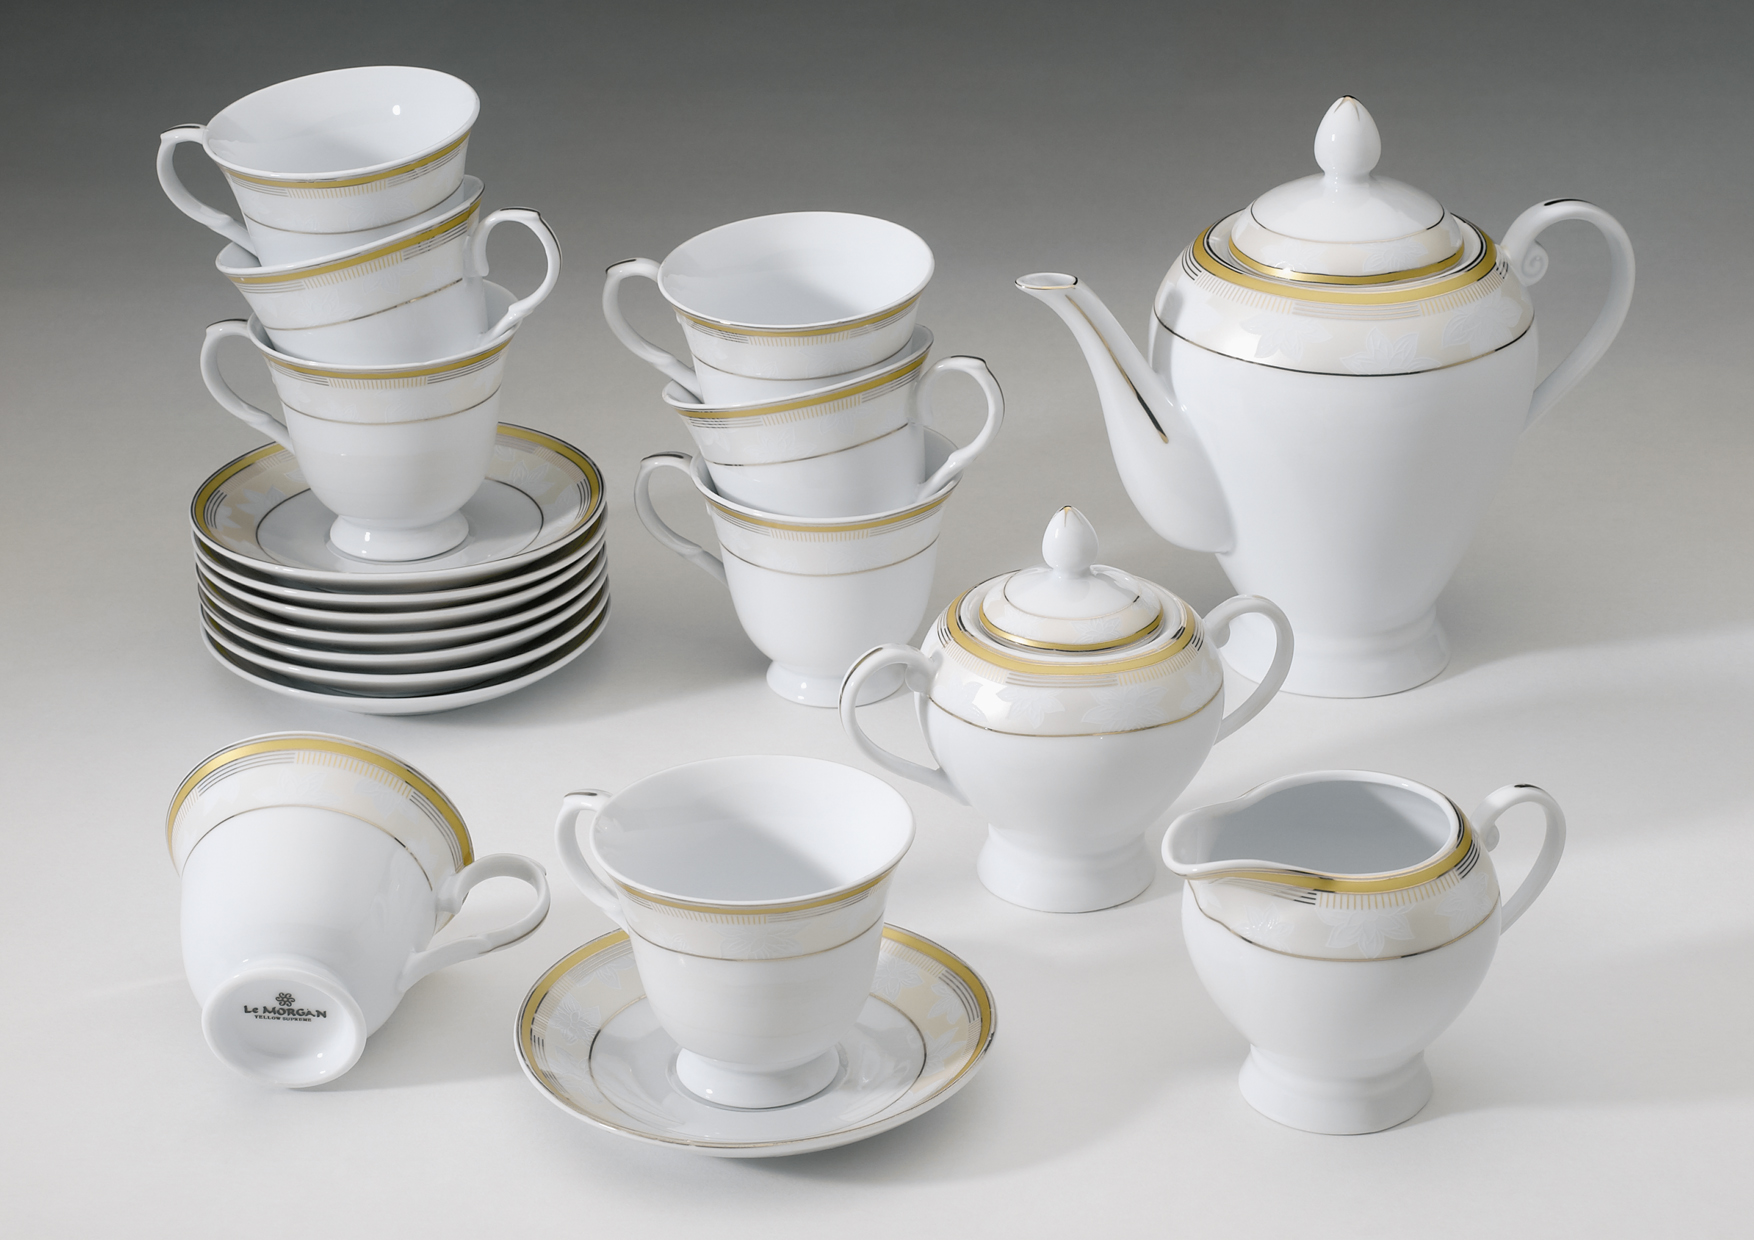 A tea set. What is included in the set for the tea ceremony 97